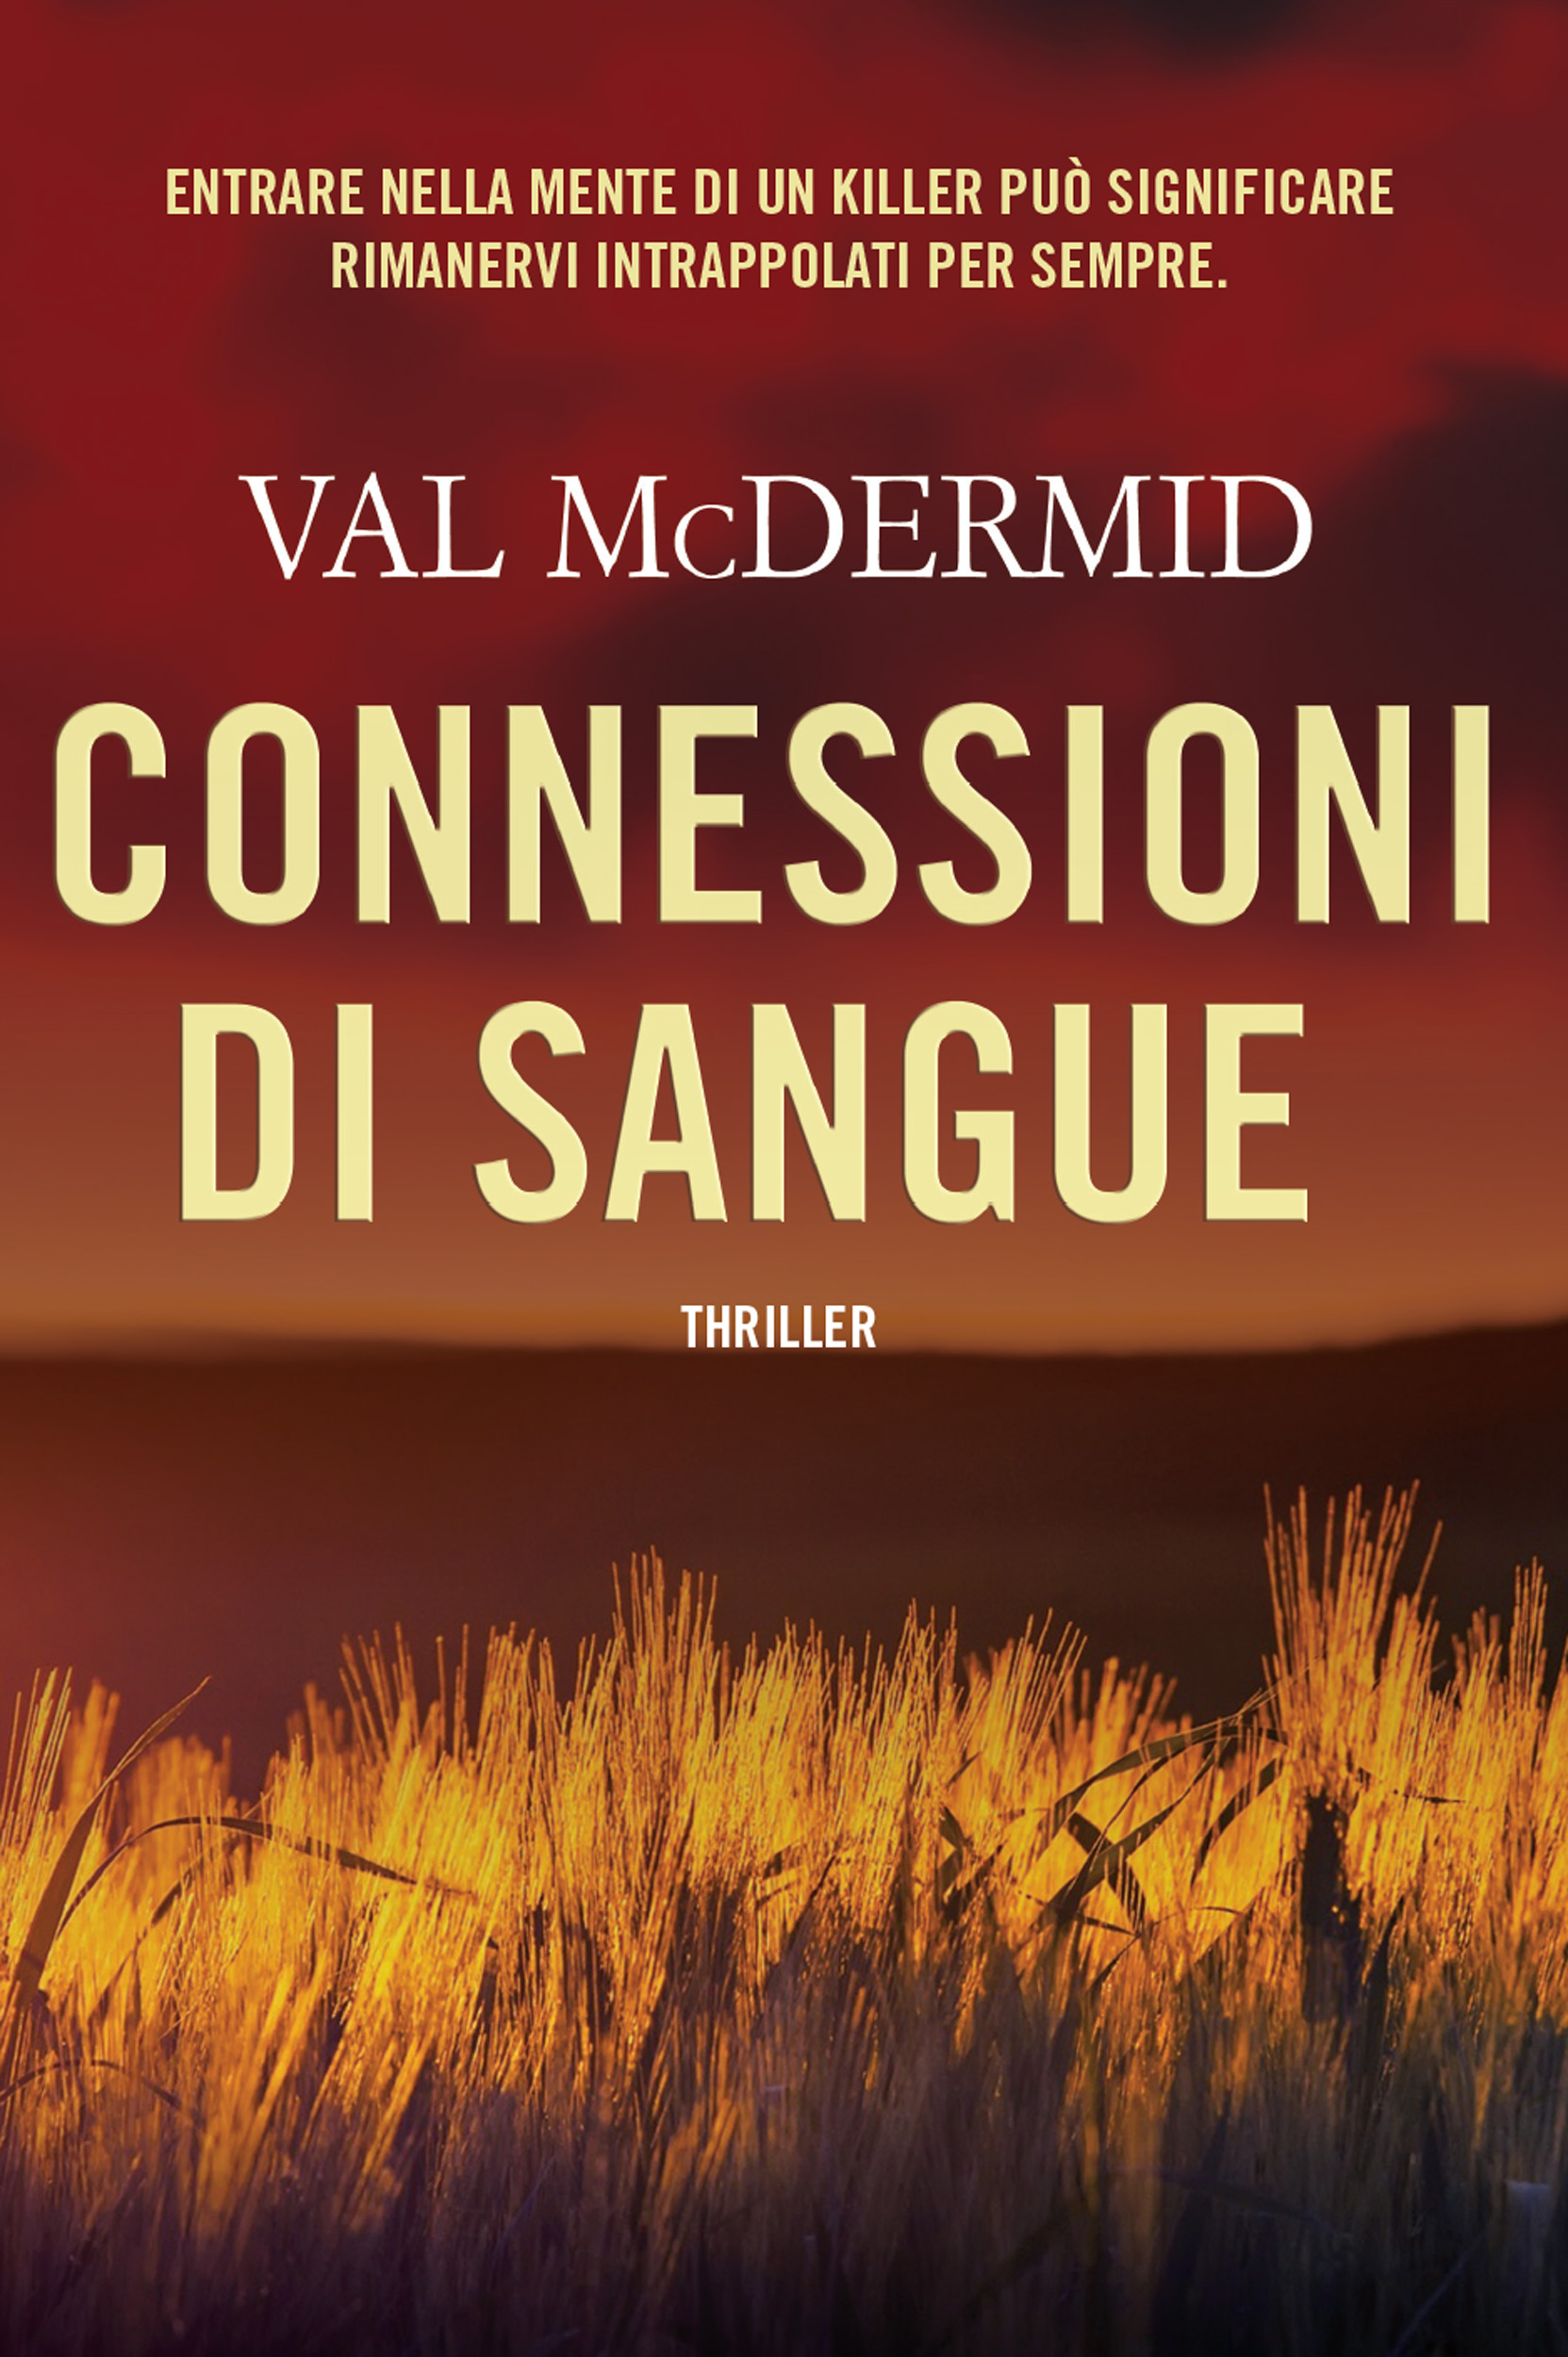 cover_Connessioni_di_sague_McDermid